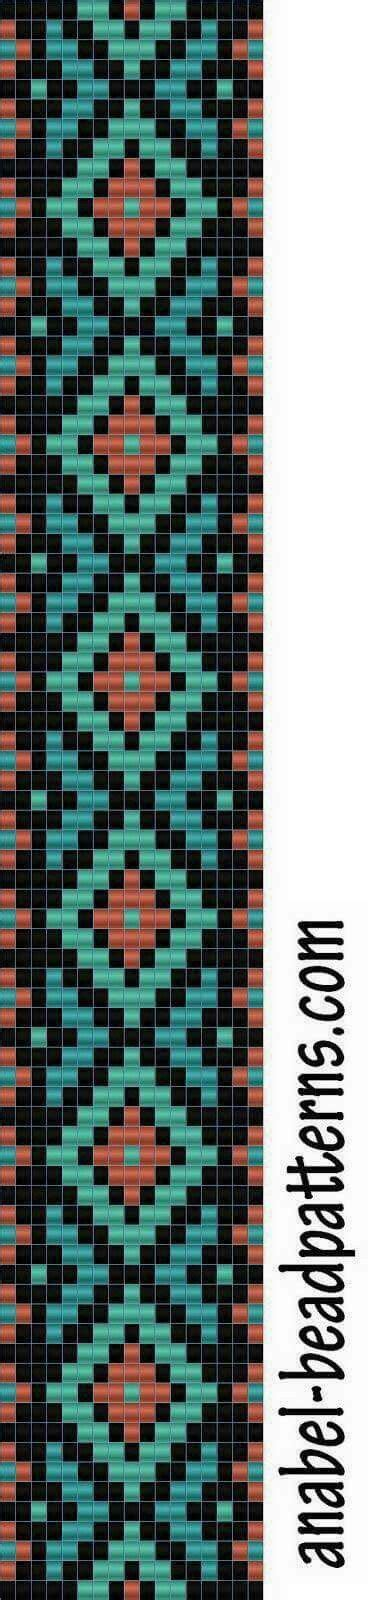 bead weaving patterns 1233 best images about beaded loomwork or peyote on